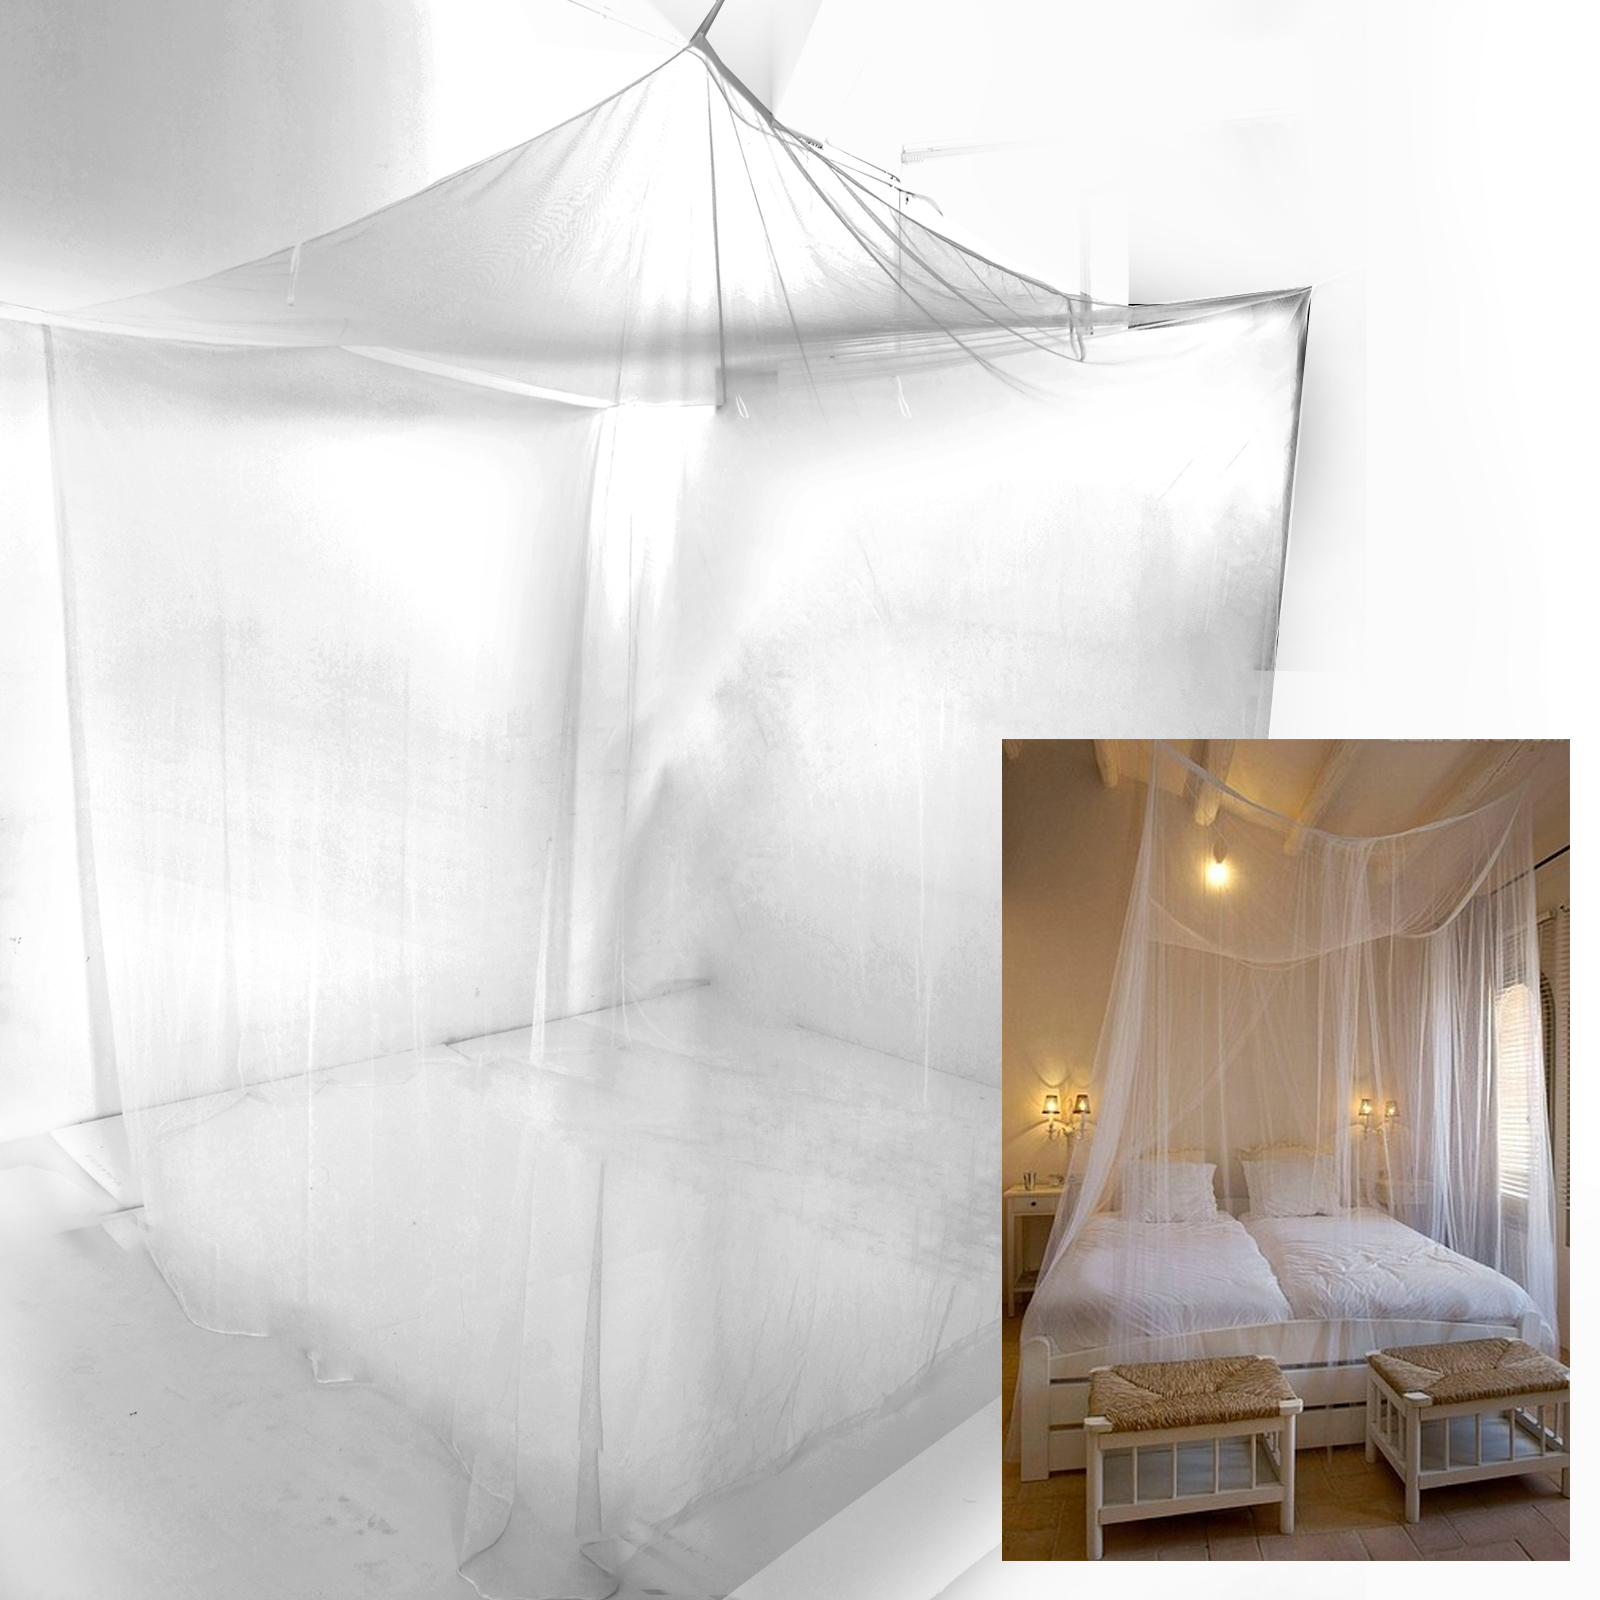 Bed Sheer Panel Canopy Net Mosquito Net Bedroom Insect Curtain Camping Netting Ebay